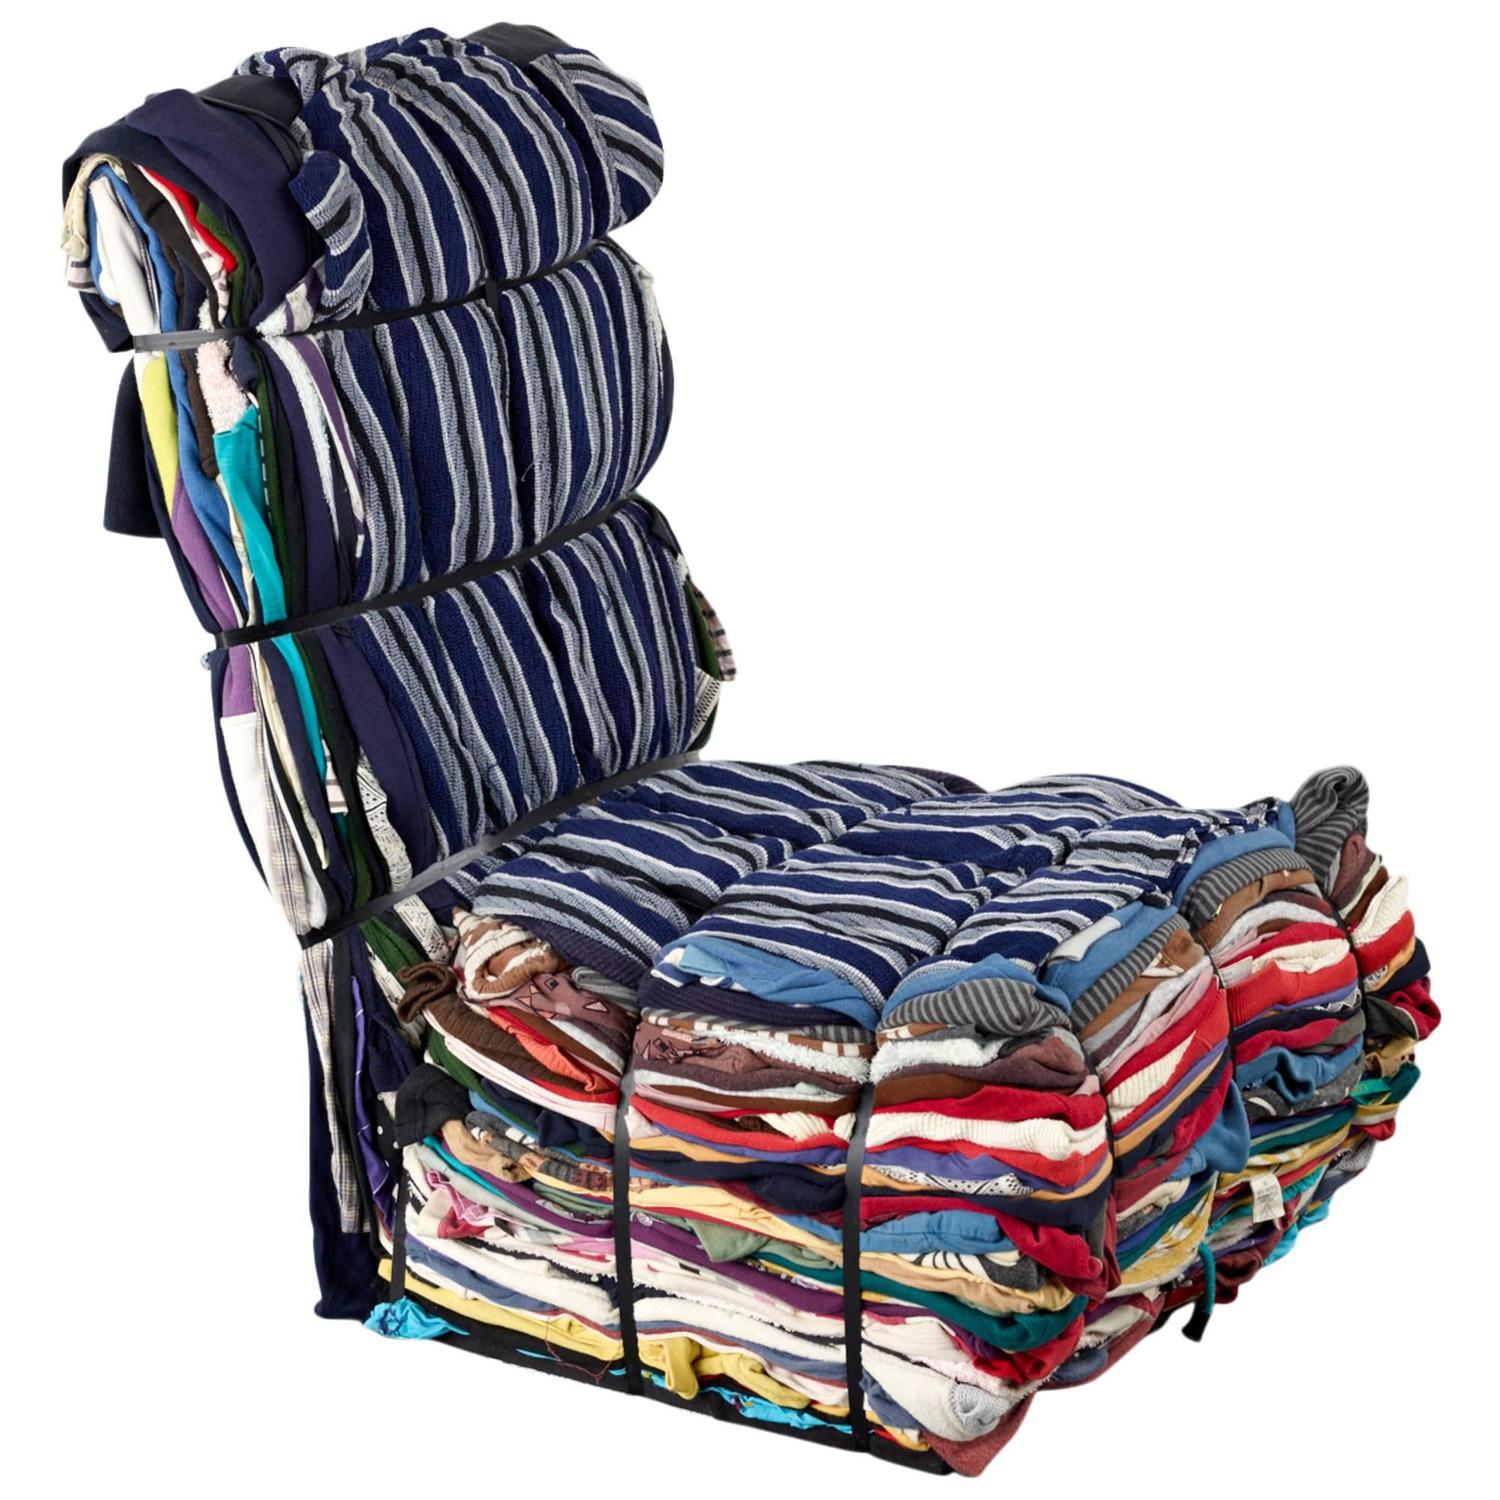 Tejo Remy Rag Chair For Droog Design Sale At 1stdibs